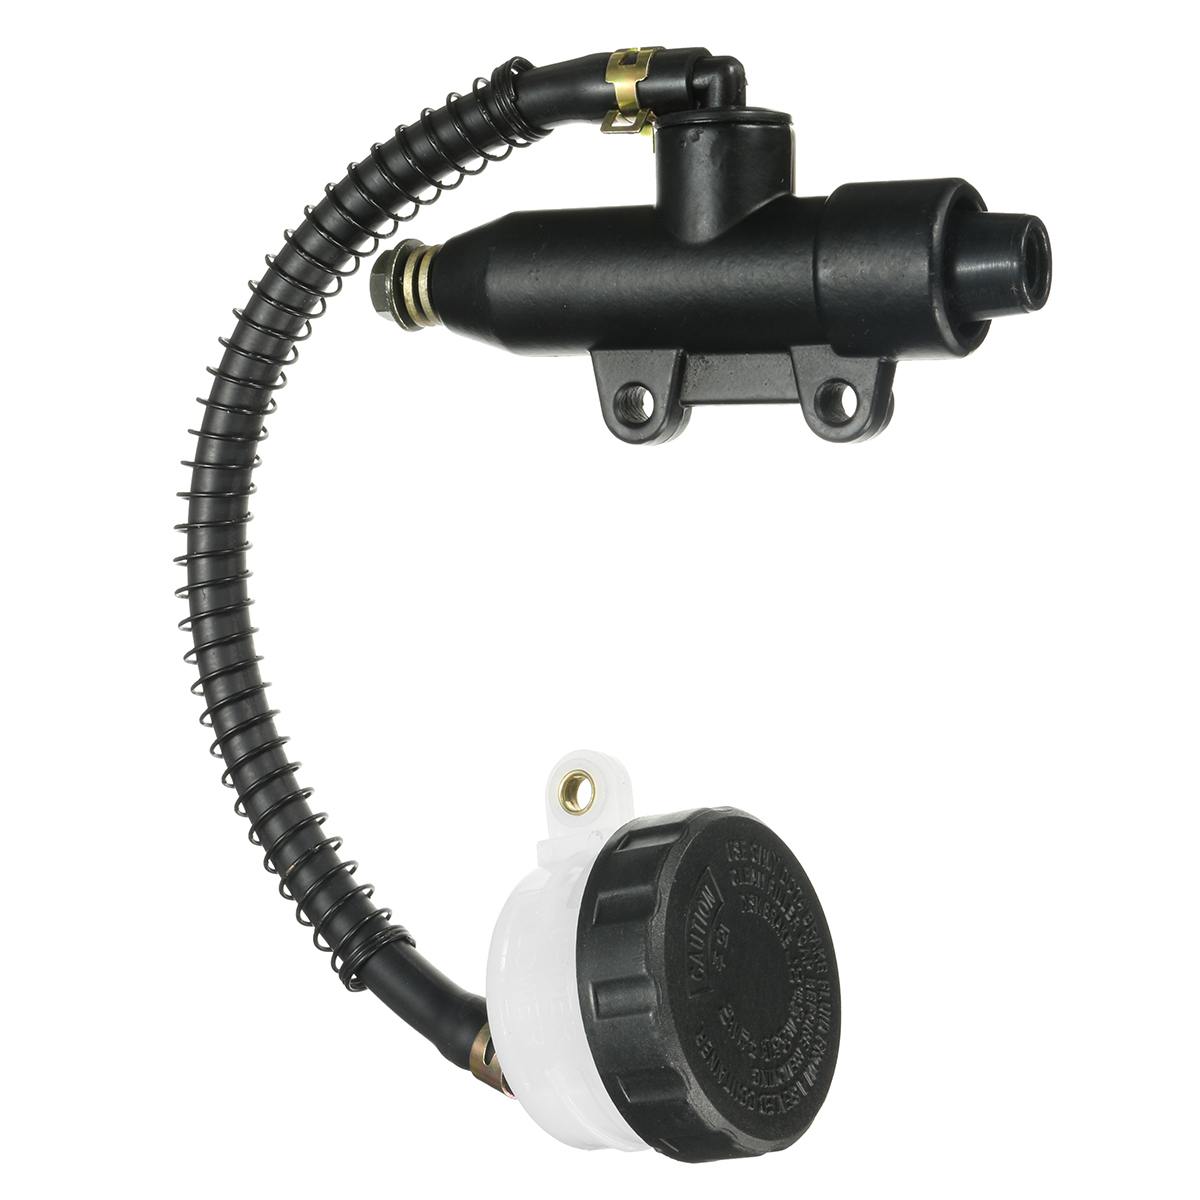 Dirt Bikes For Hydraulic Cylinders : Accessories motorcycle rear brake hydraulic master oil